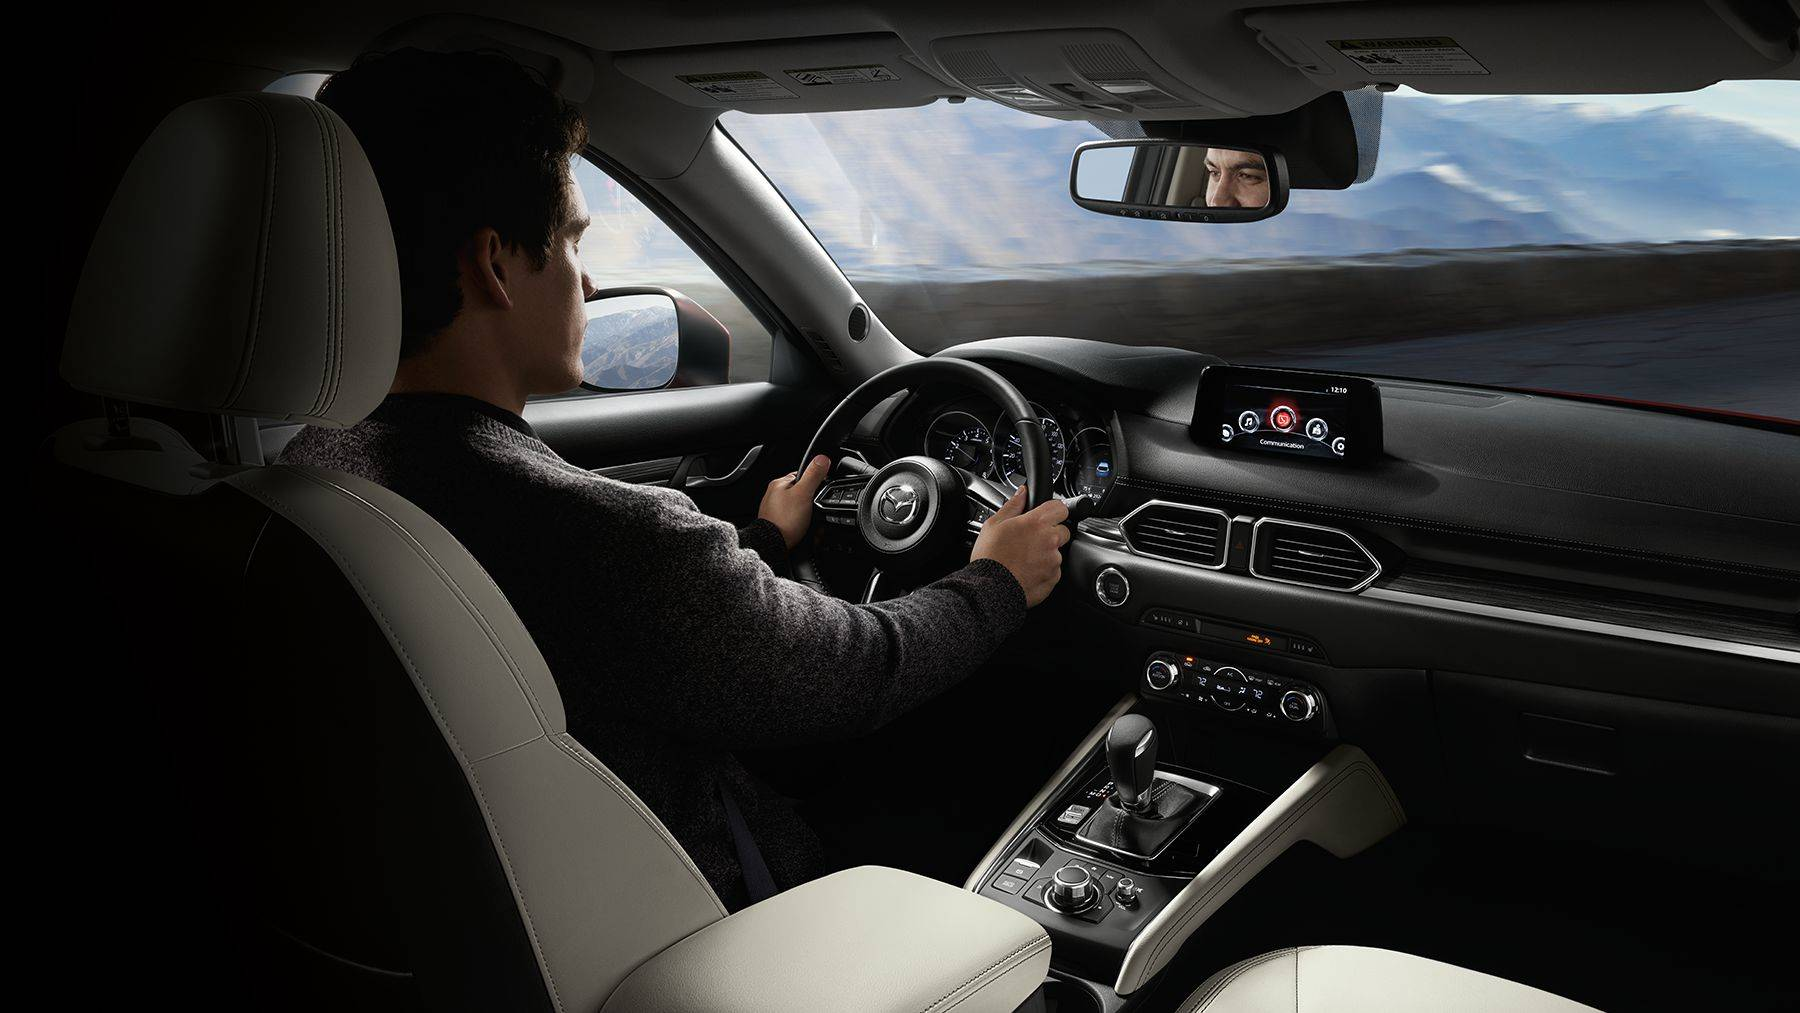 Enjoy the Journey in the 2018 CX-5